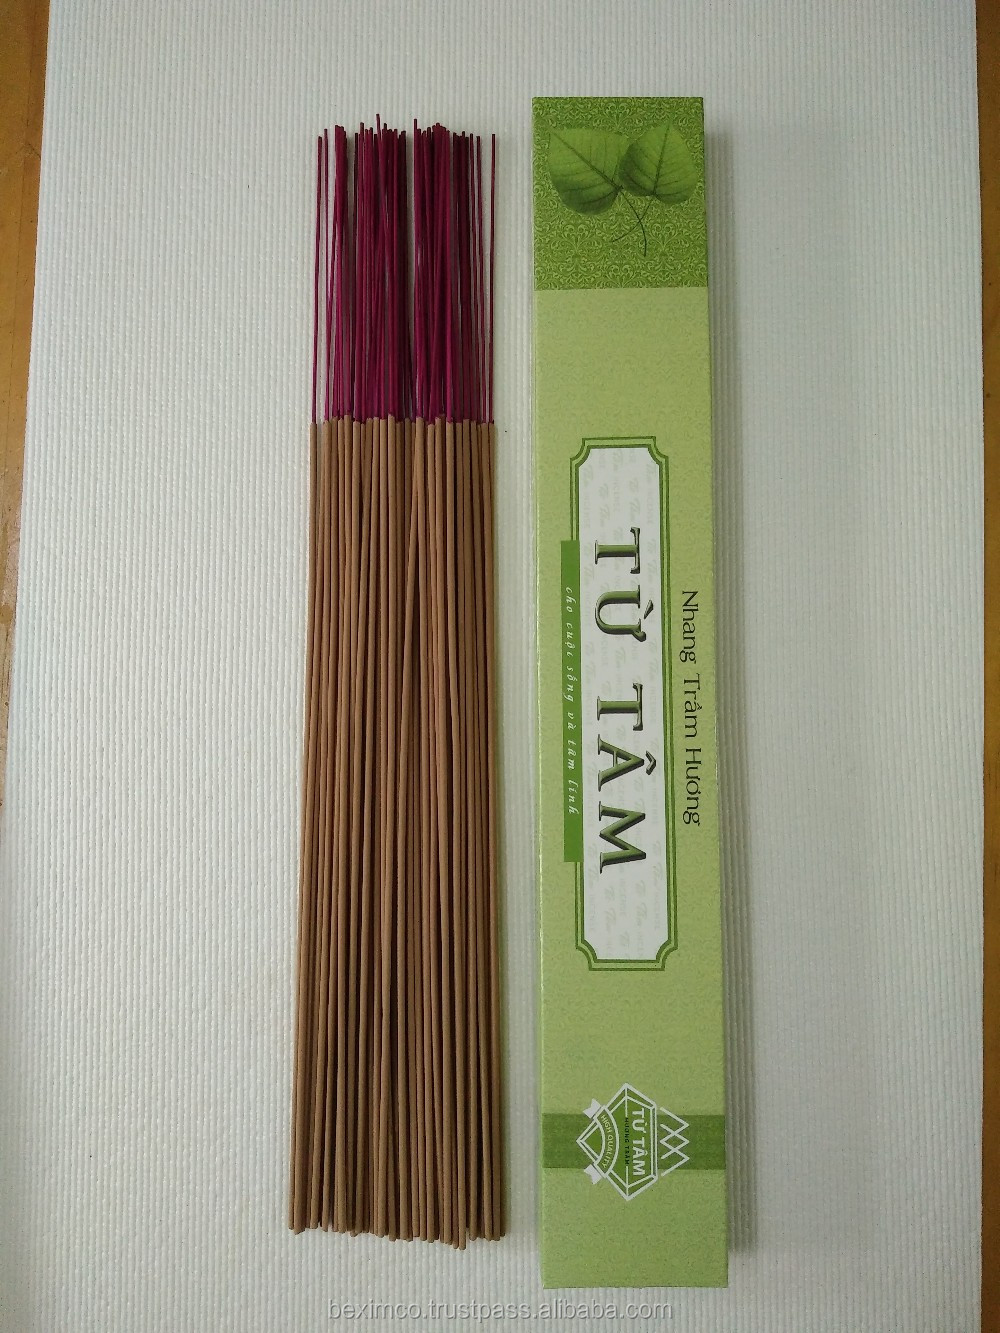 Hot seller Oud Incense with sticks for Taiwan, Hong Kong and Singapore market